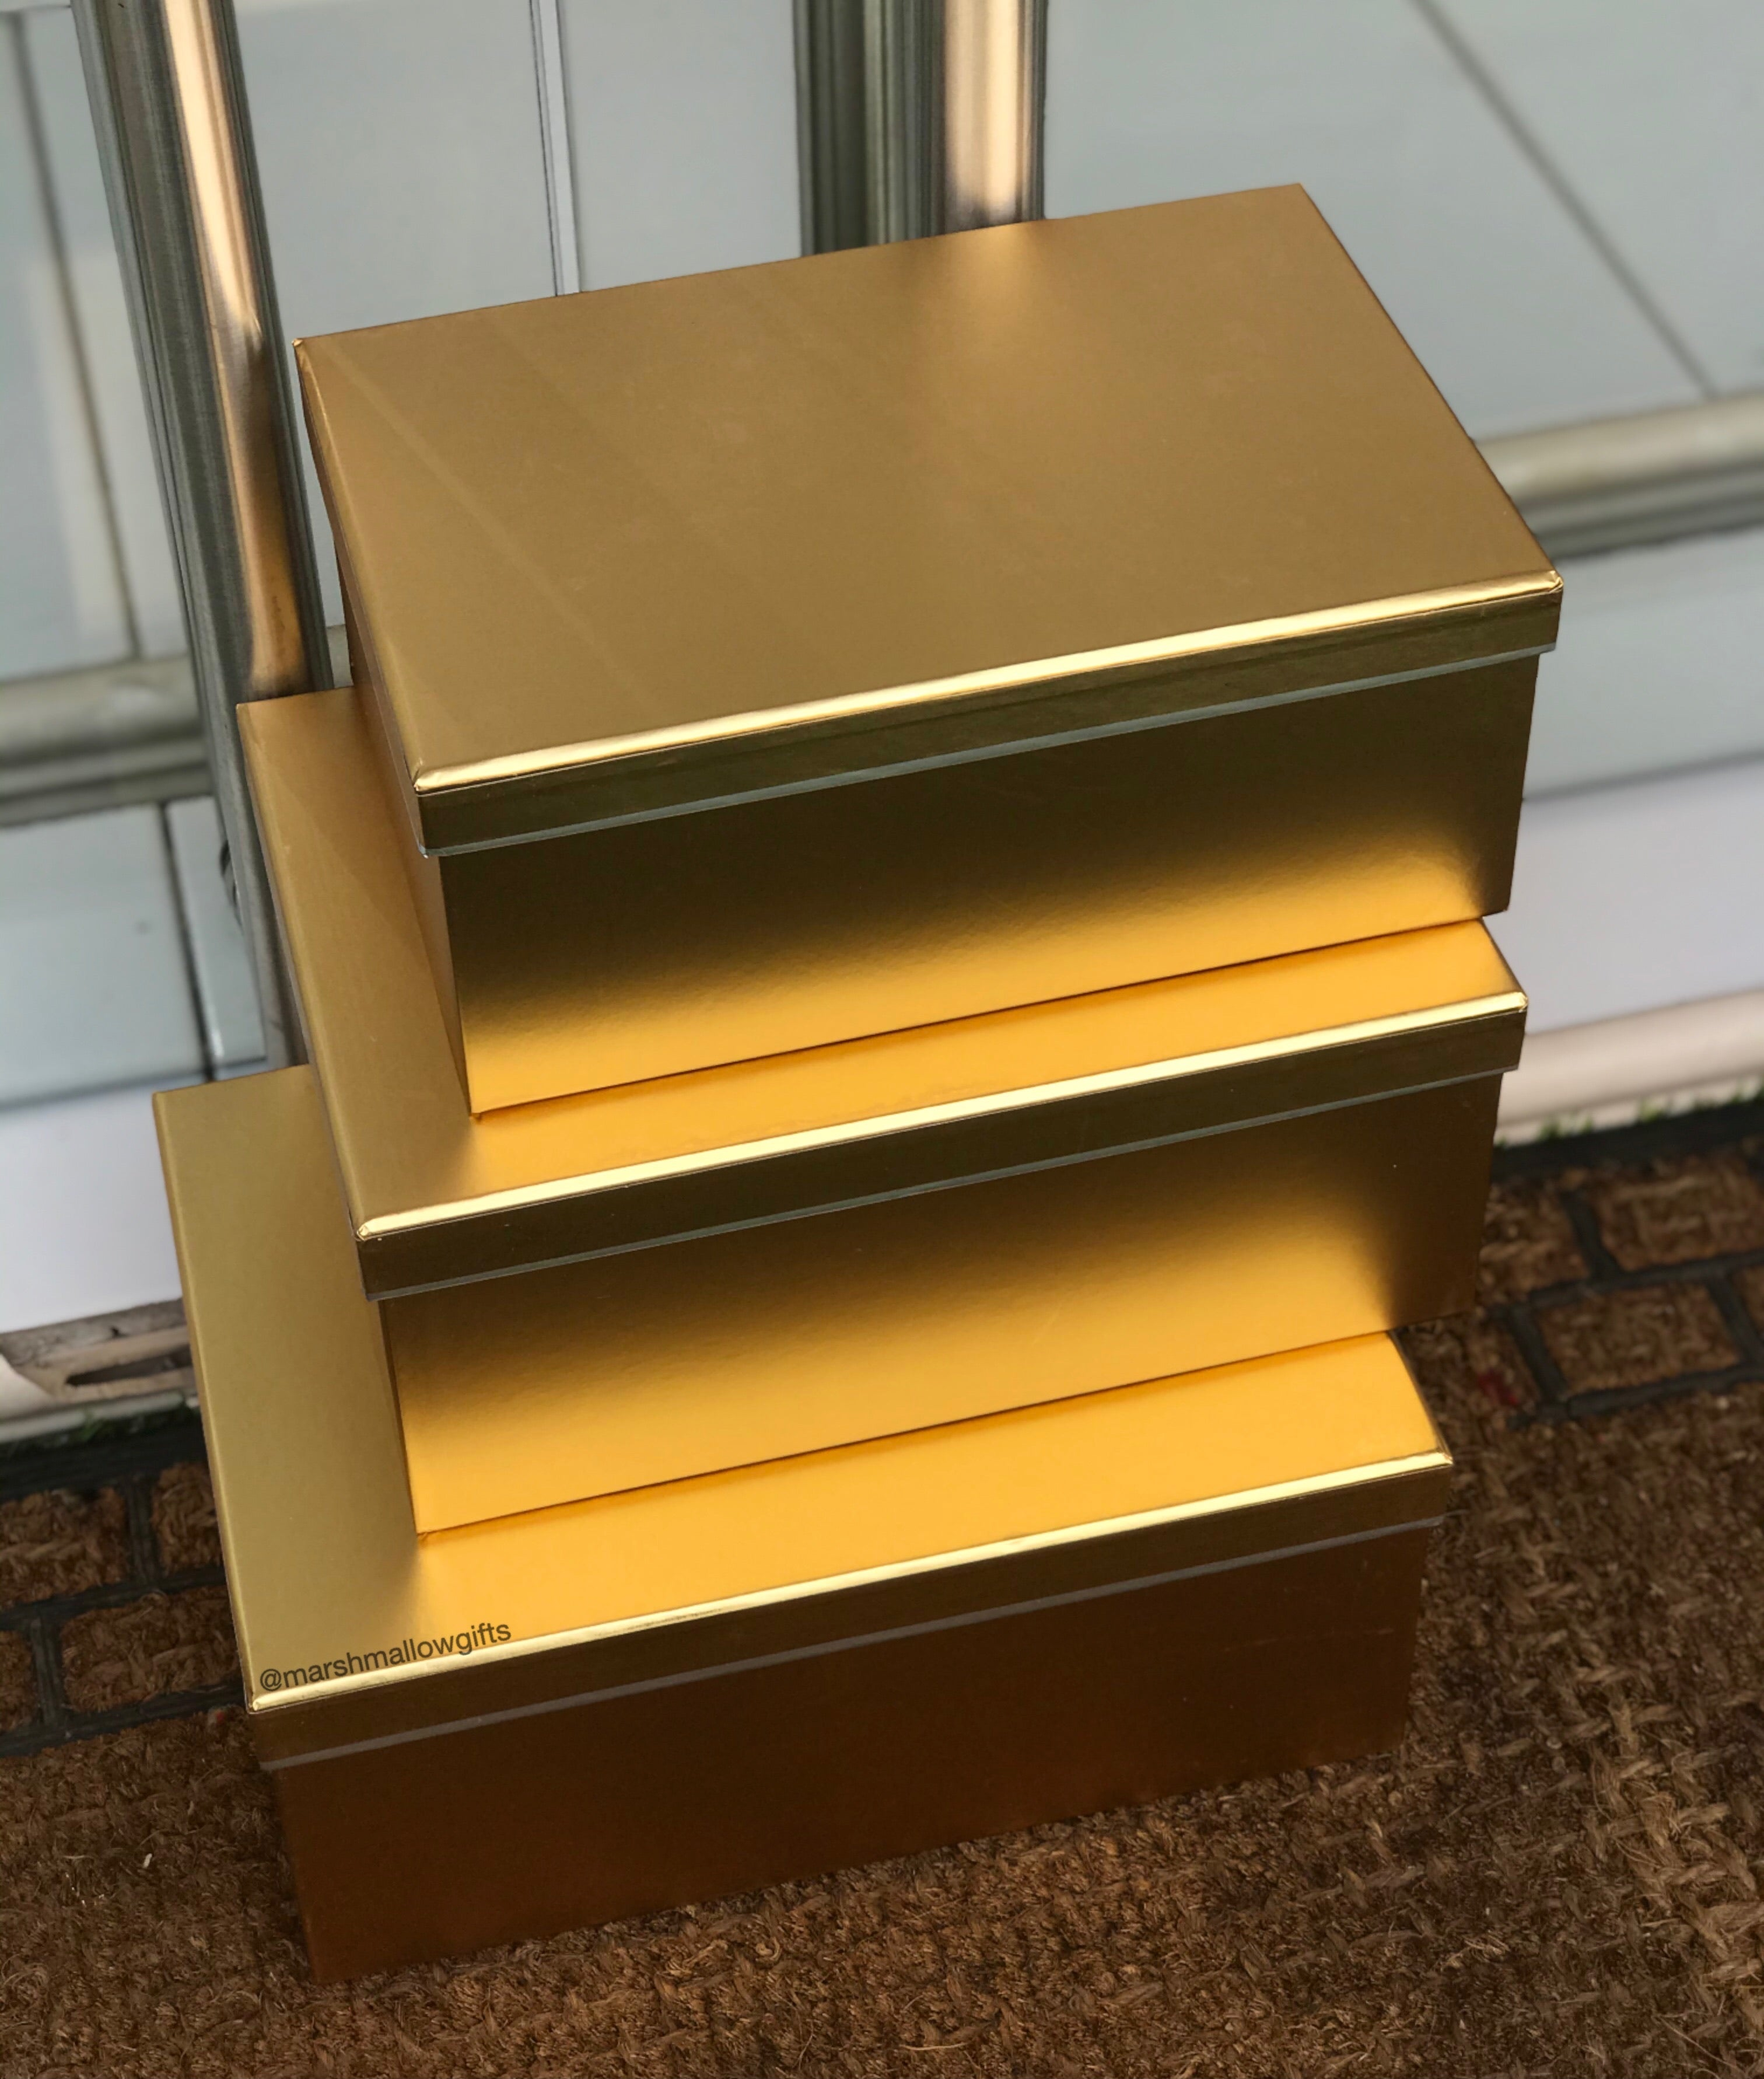 Gold metallic box